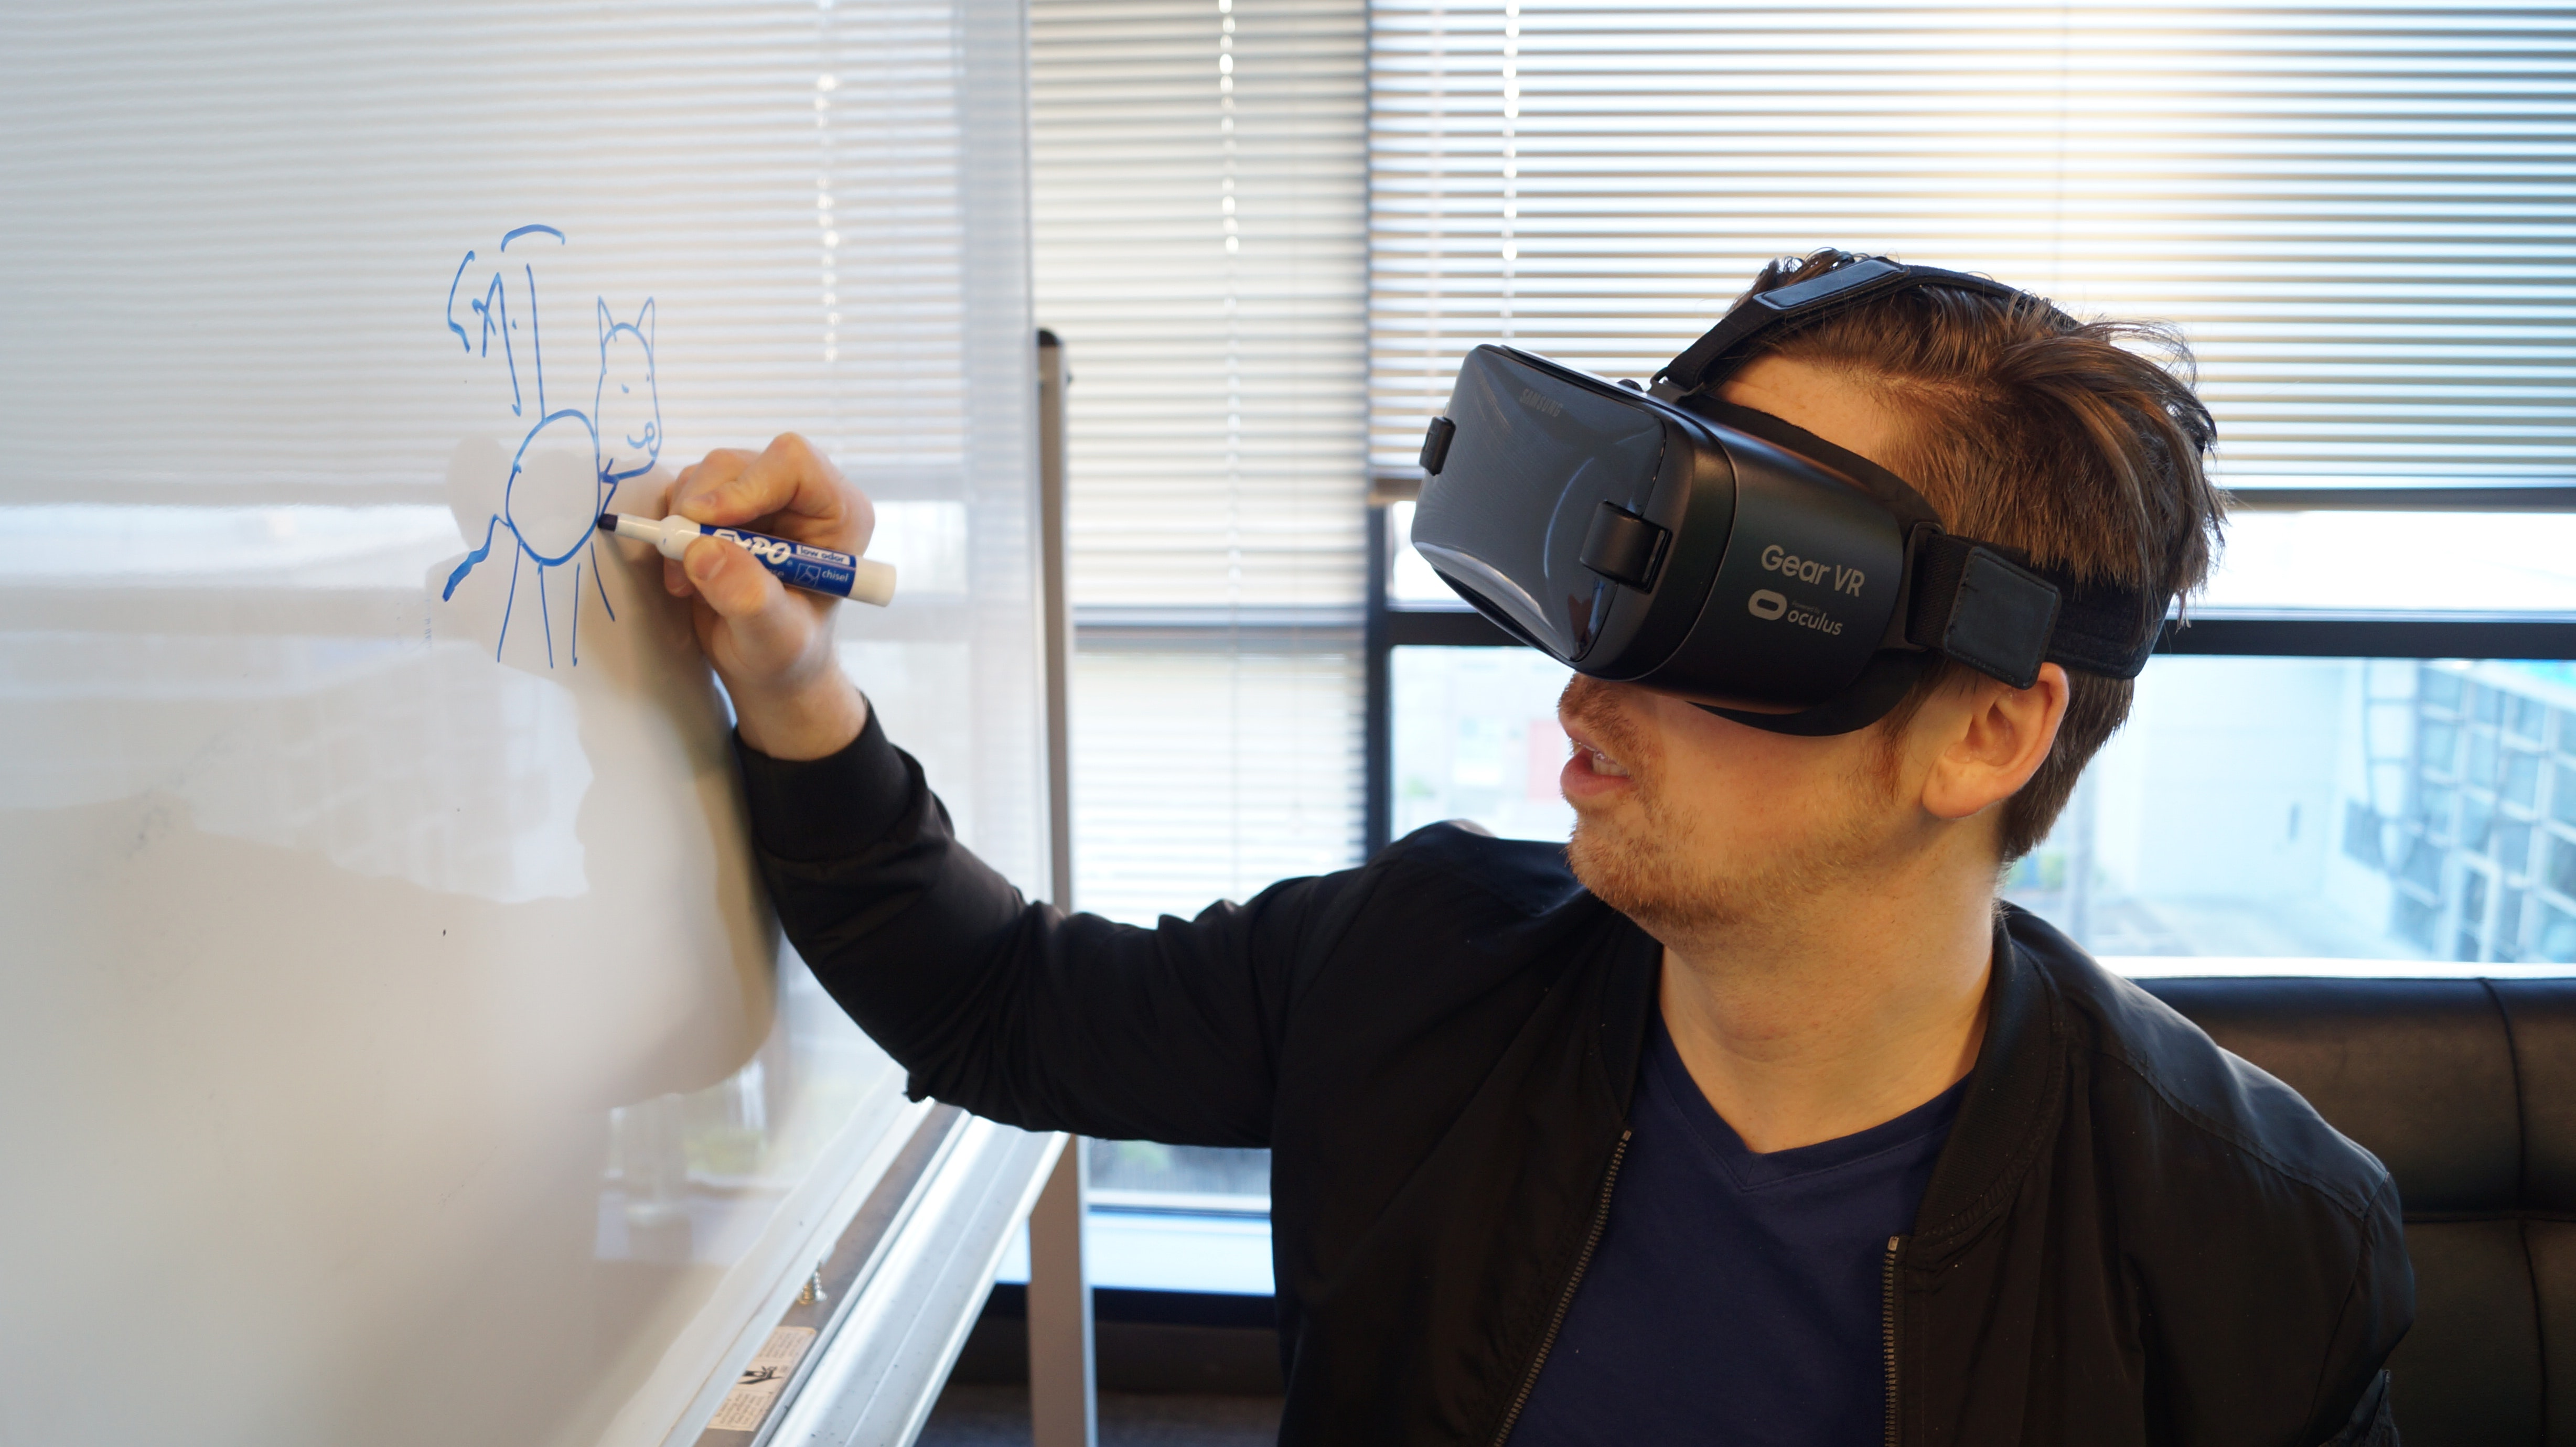 person wearing black vr box writing on white board free stock photo